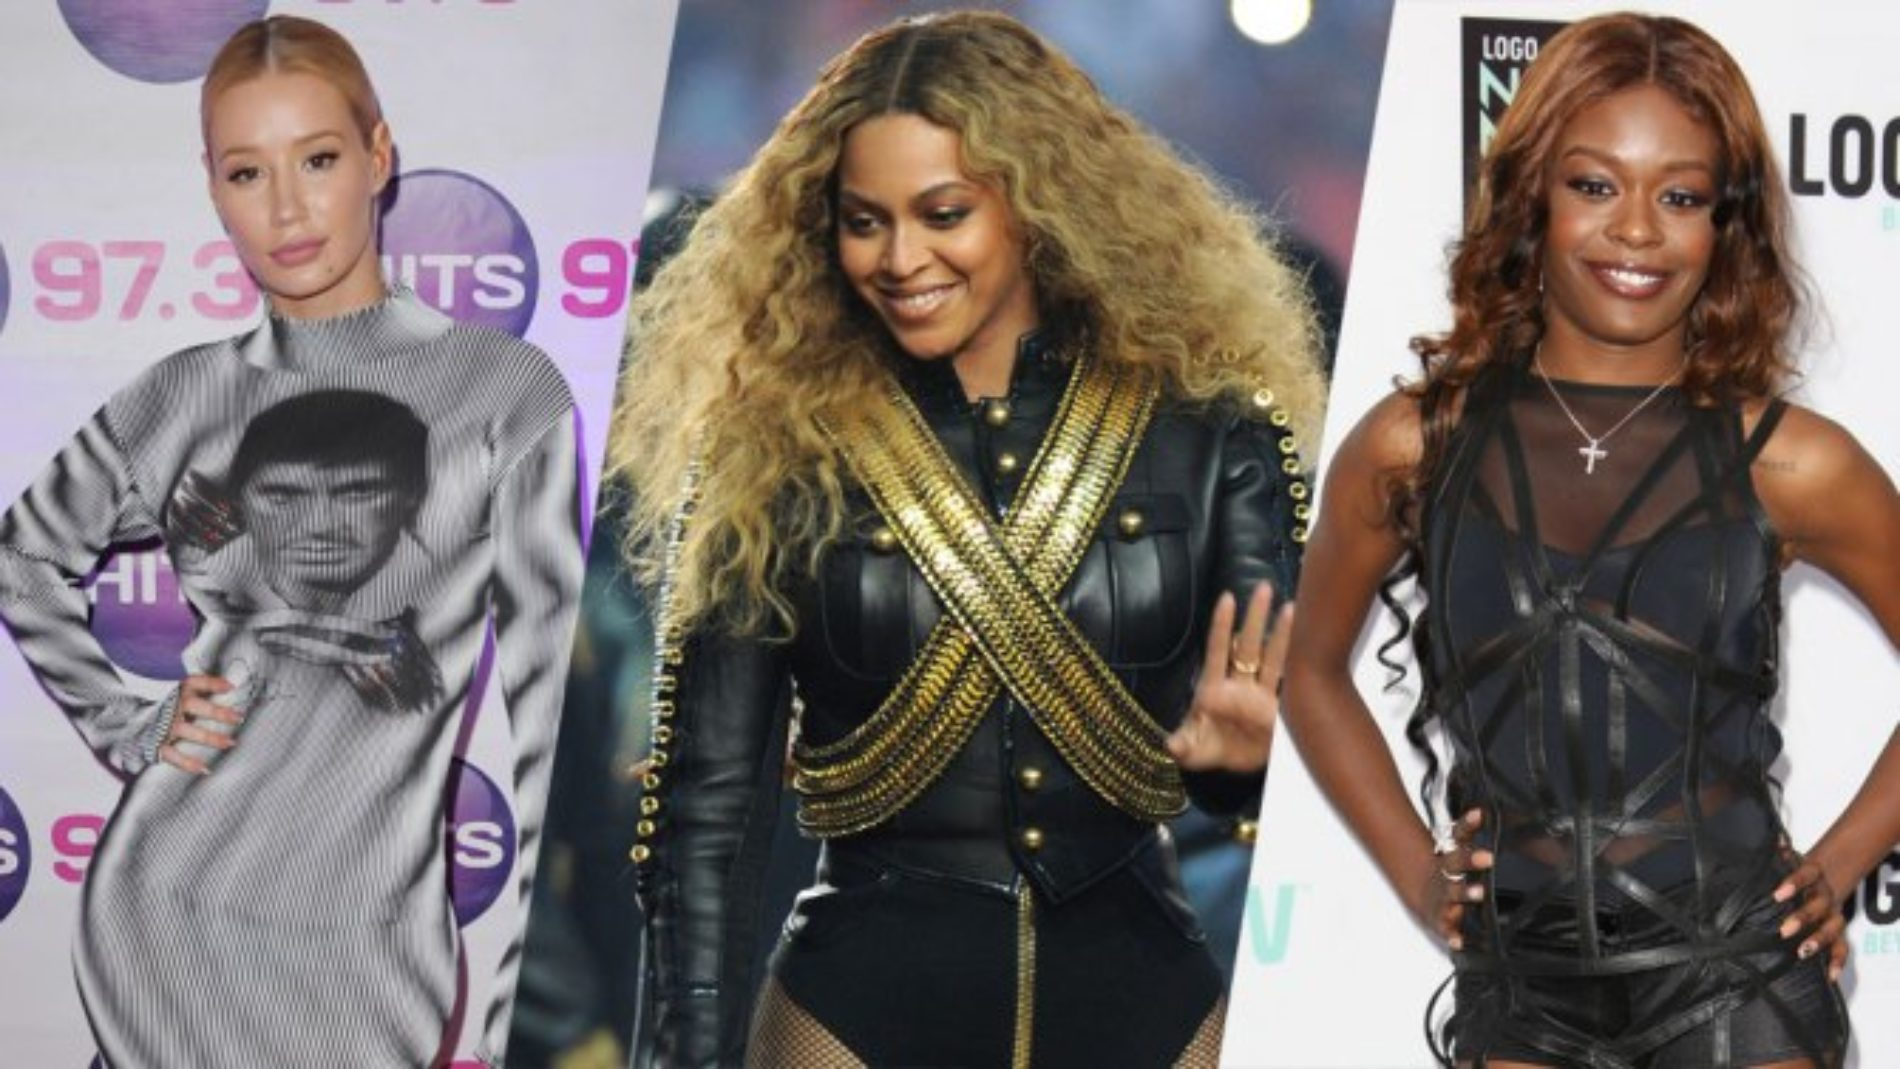 Azealia Banks, Iggy Azalea puts Beyoncé on blast over 'Lemonade'